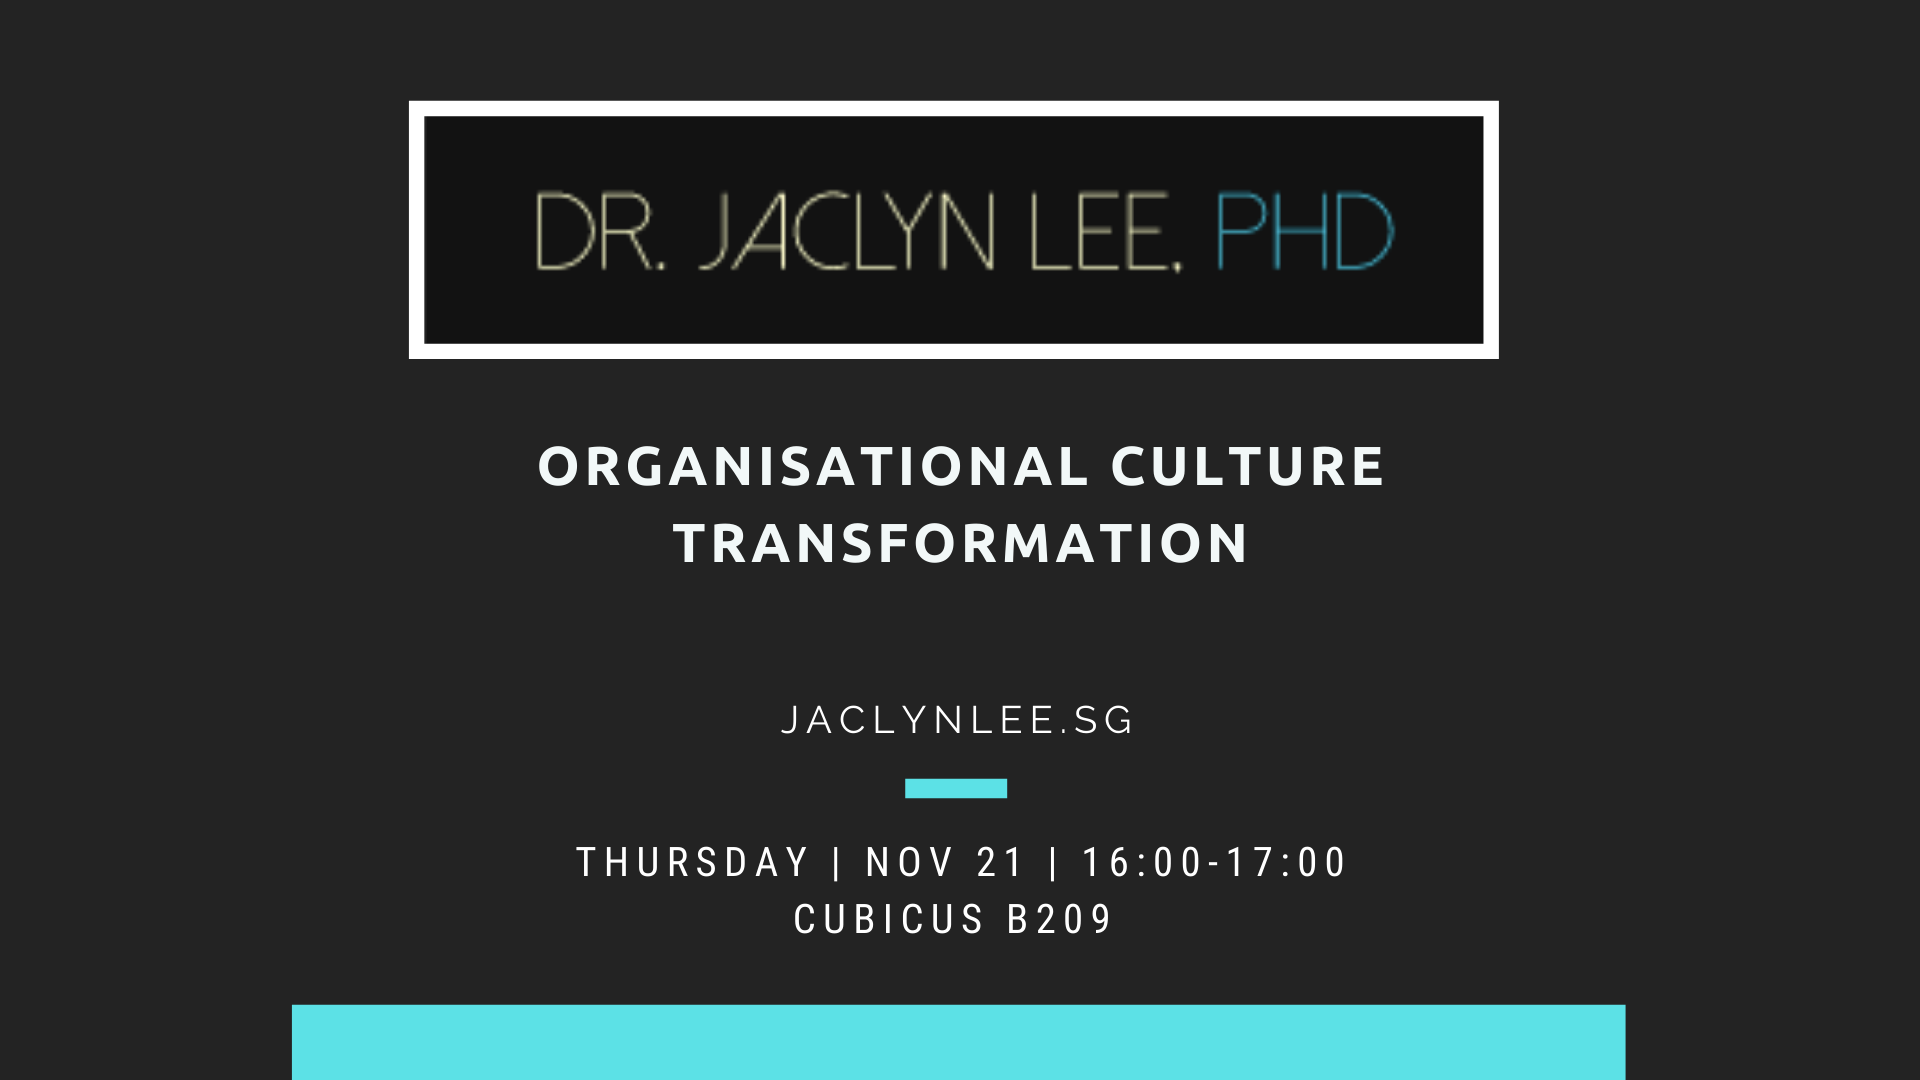 Organisation Culture Transformation: Inspirational talk by Jaclyn Lee